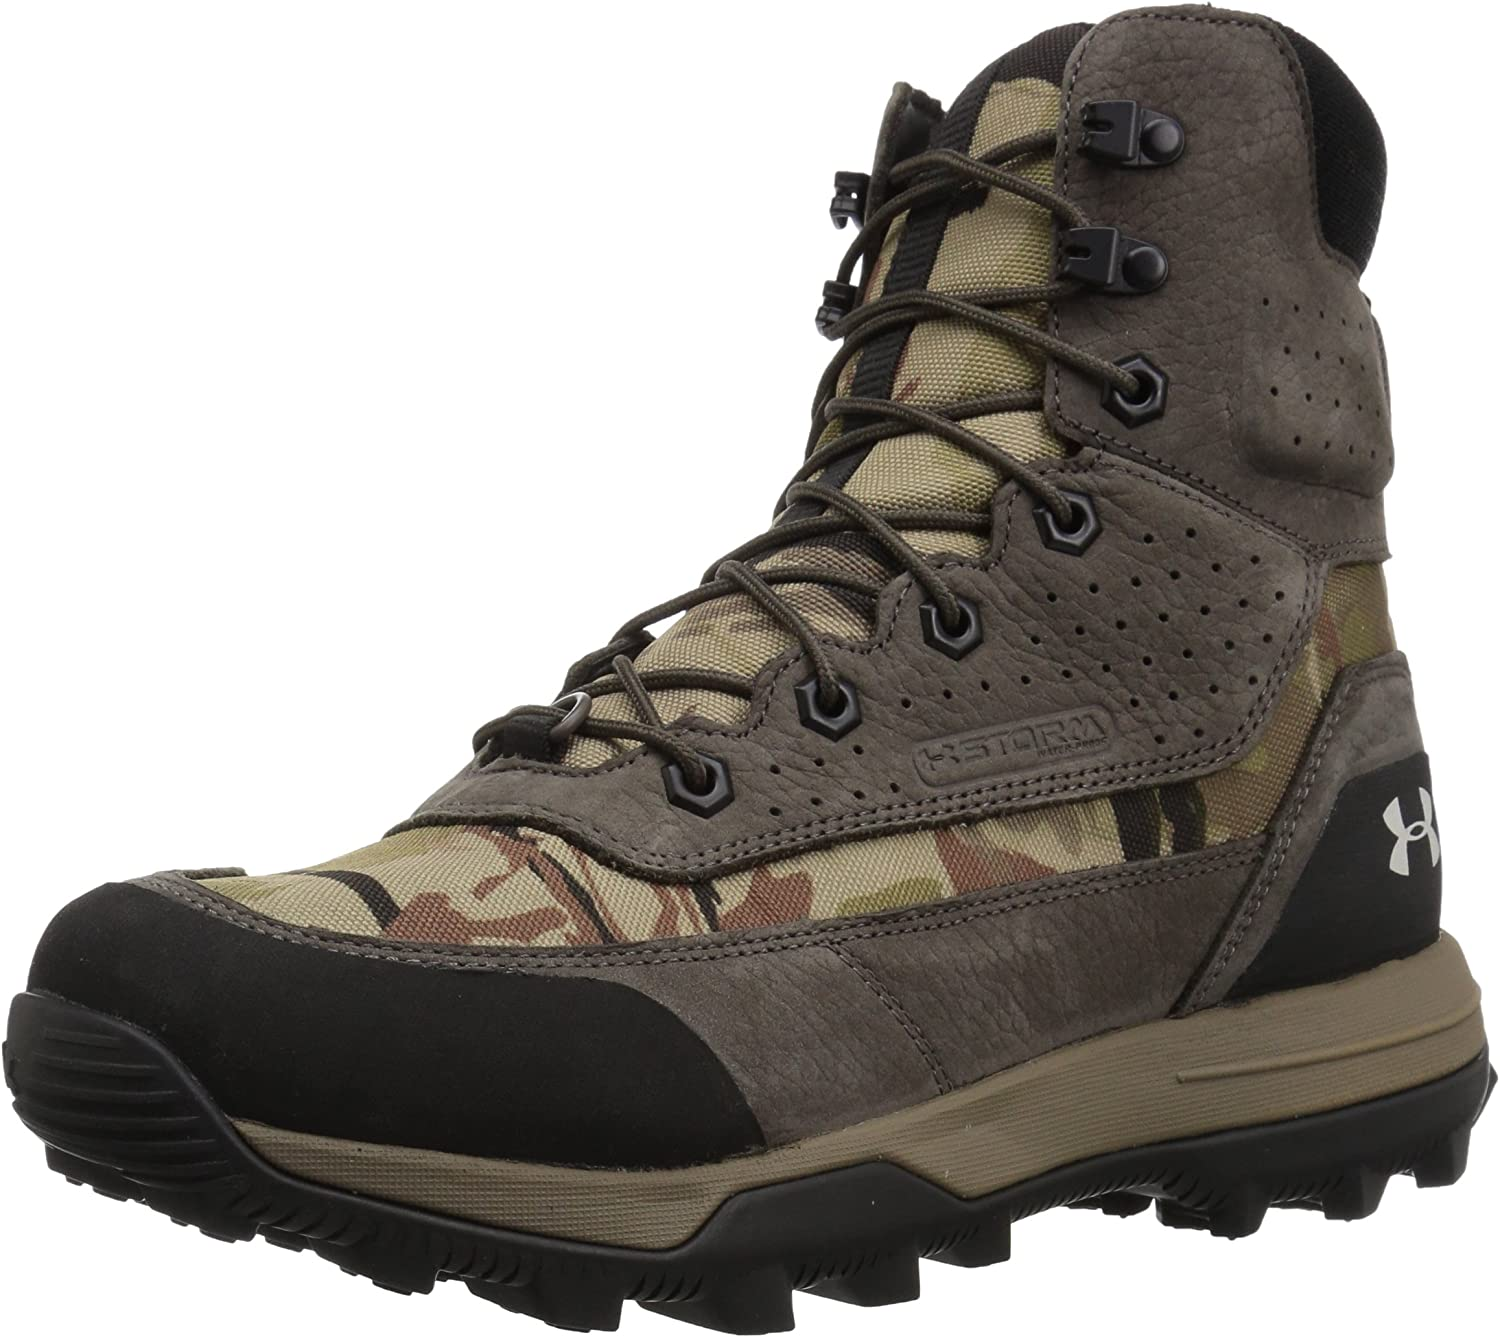 Under Armour Women's Speed Freek Bozeman 2.0 Ankle Boot, Ridge Reaper Camo Ba (900)/Maverick Brown, 11 M US